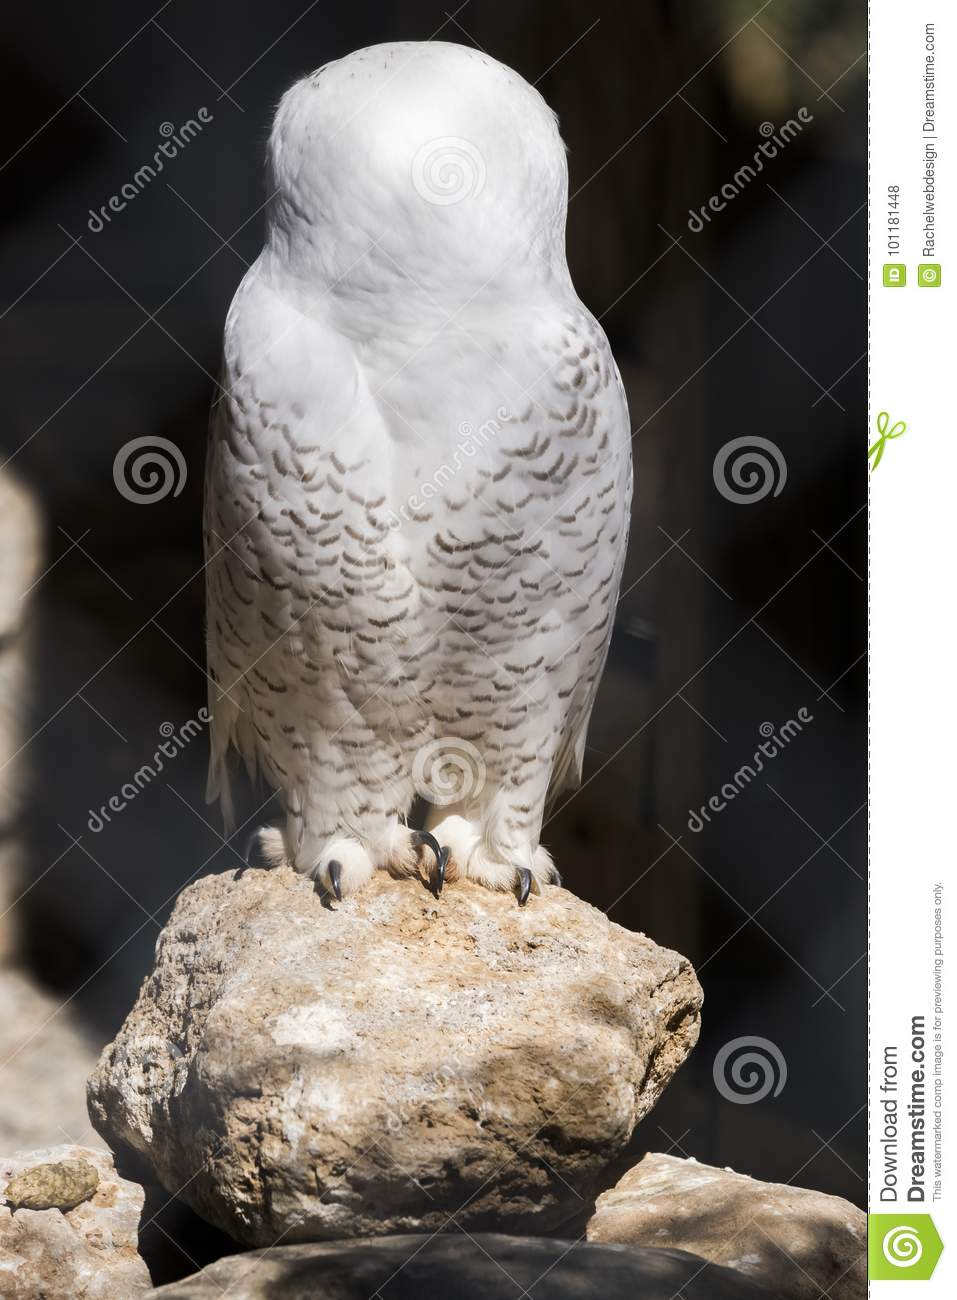 White owl with head turned completely to back perched on a rock, highlighted by sun